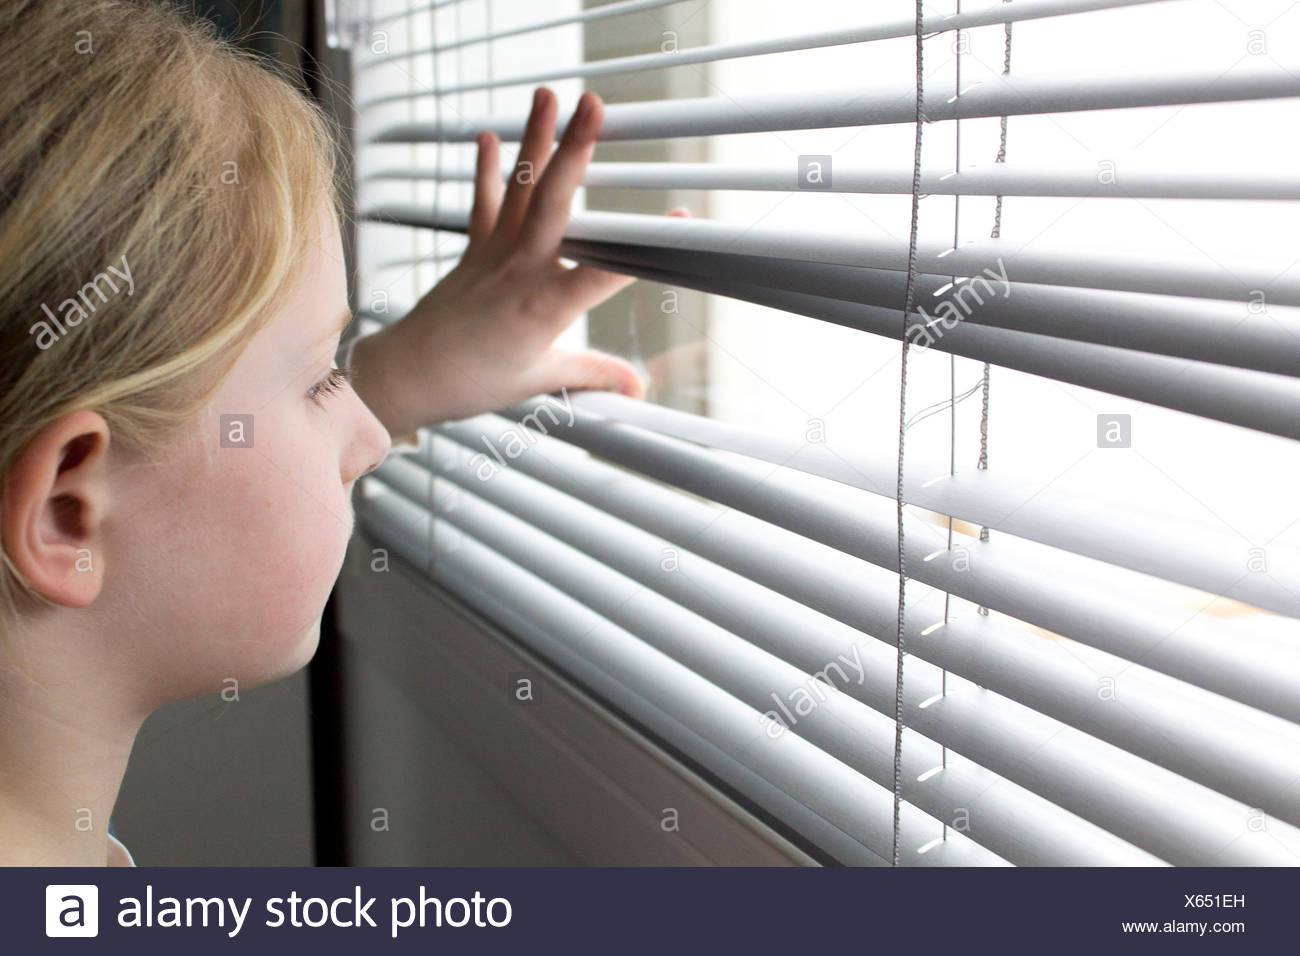 Girl looking through window blinds - Stock Image